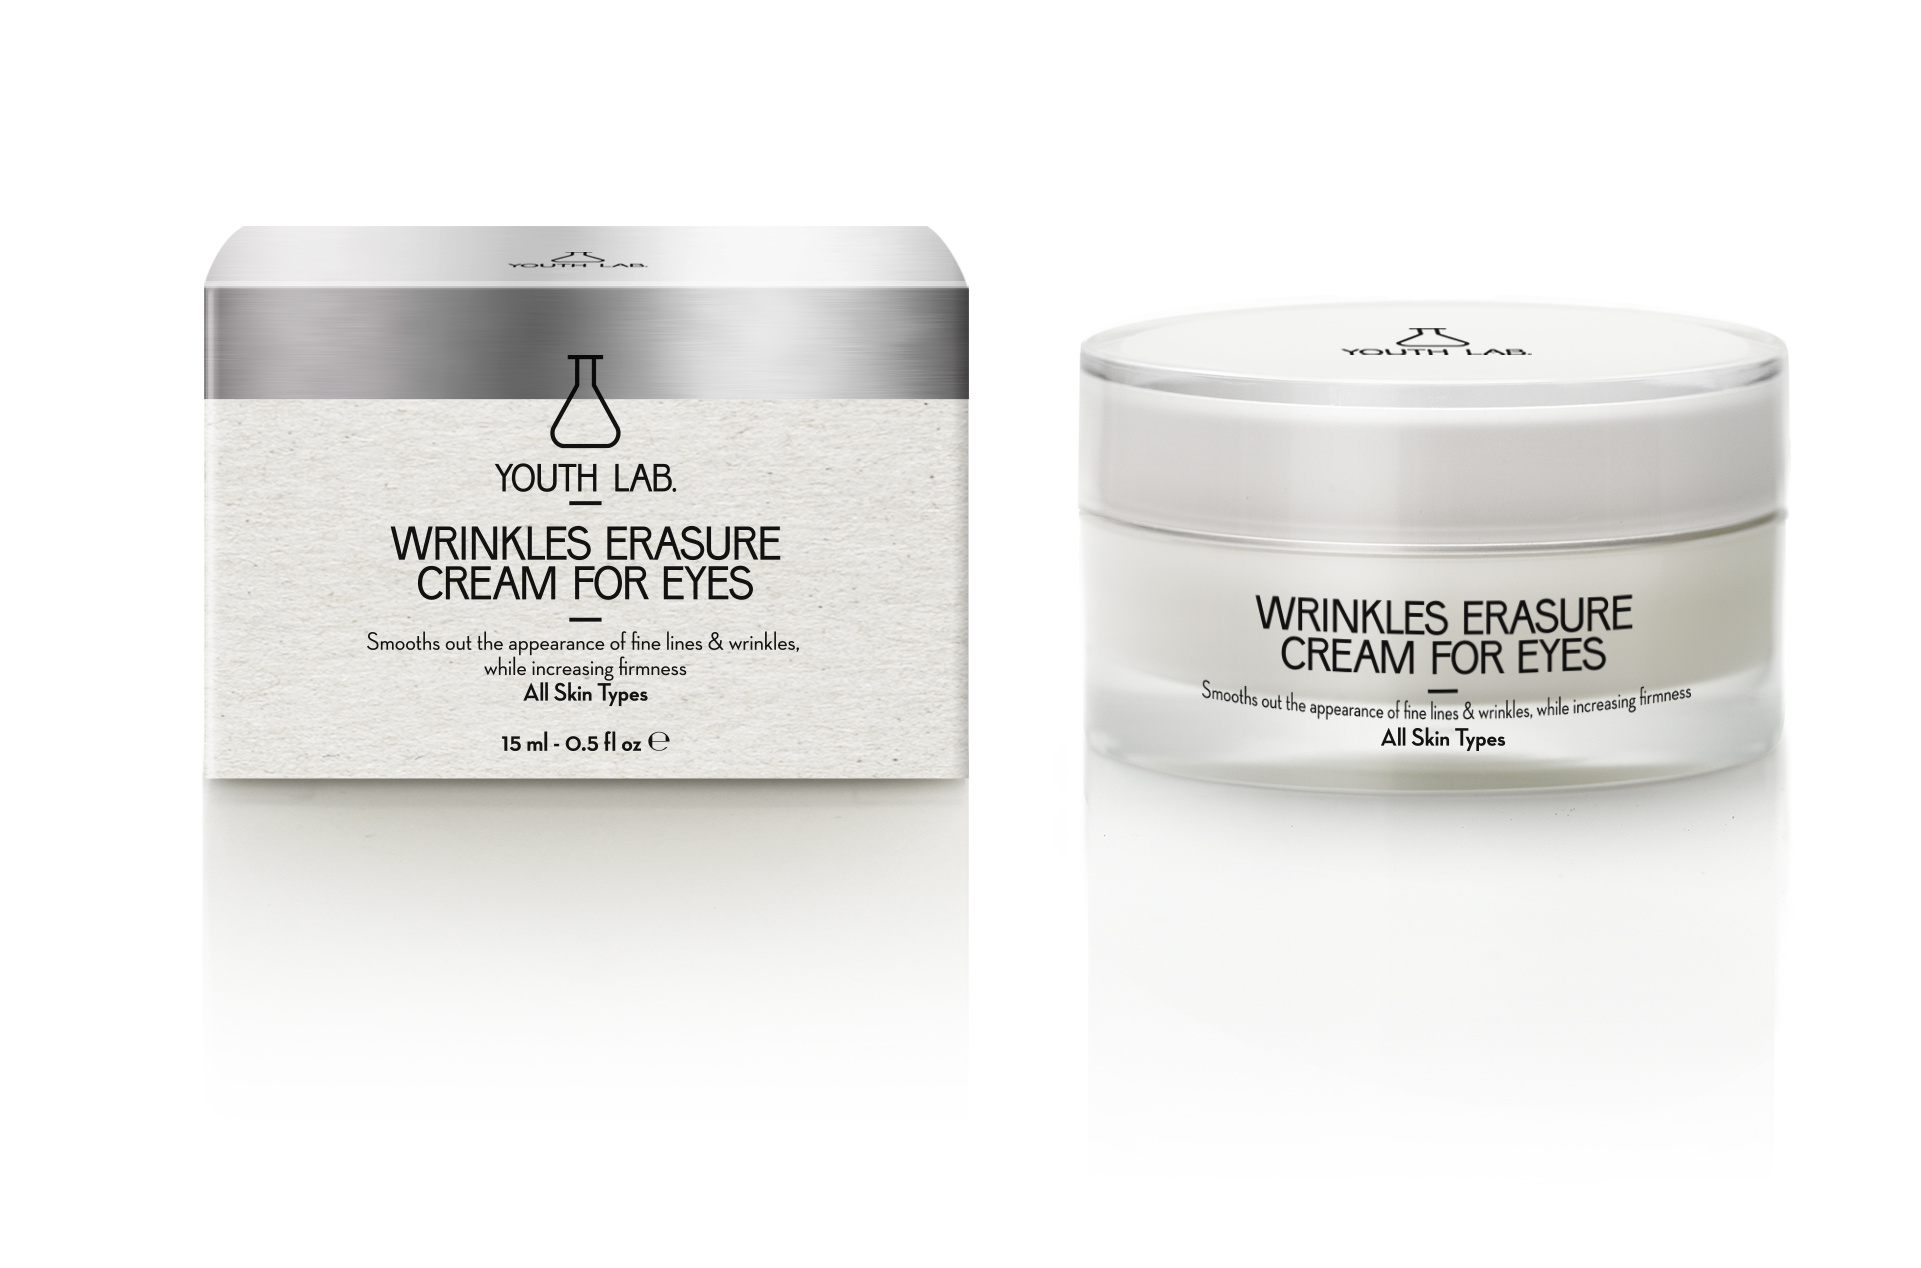 Youth Lab Youth lab Wrinkles erasure cream for eyes 15ml